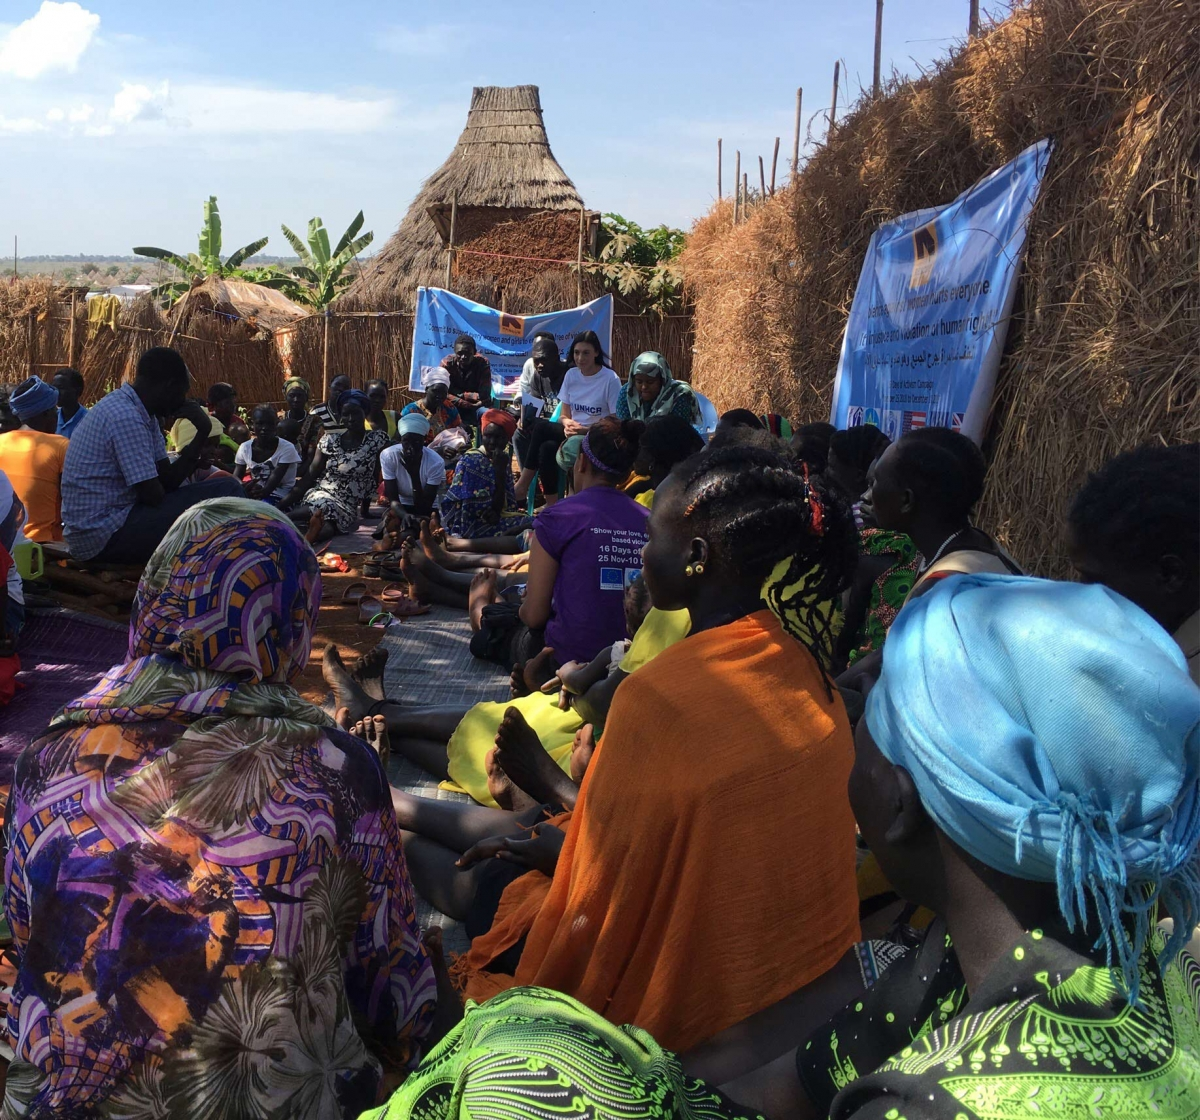 Addressing Sexual and Gender-Based Violence in Refugee Communities 2